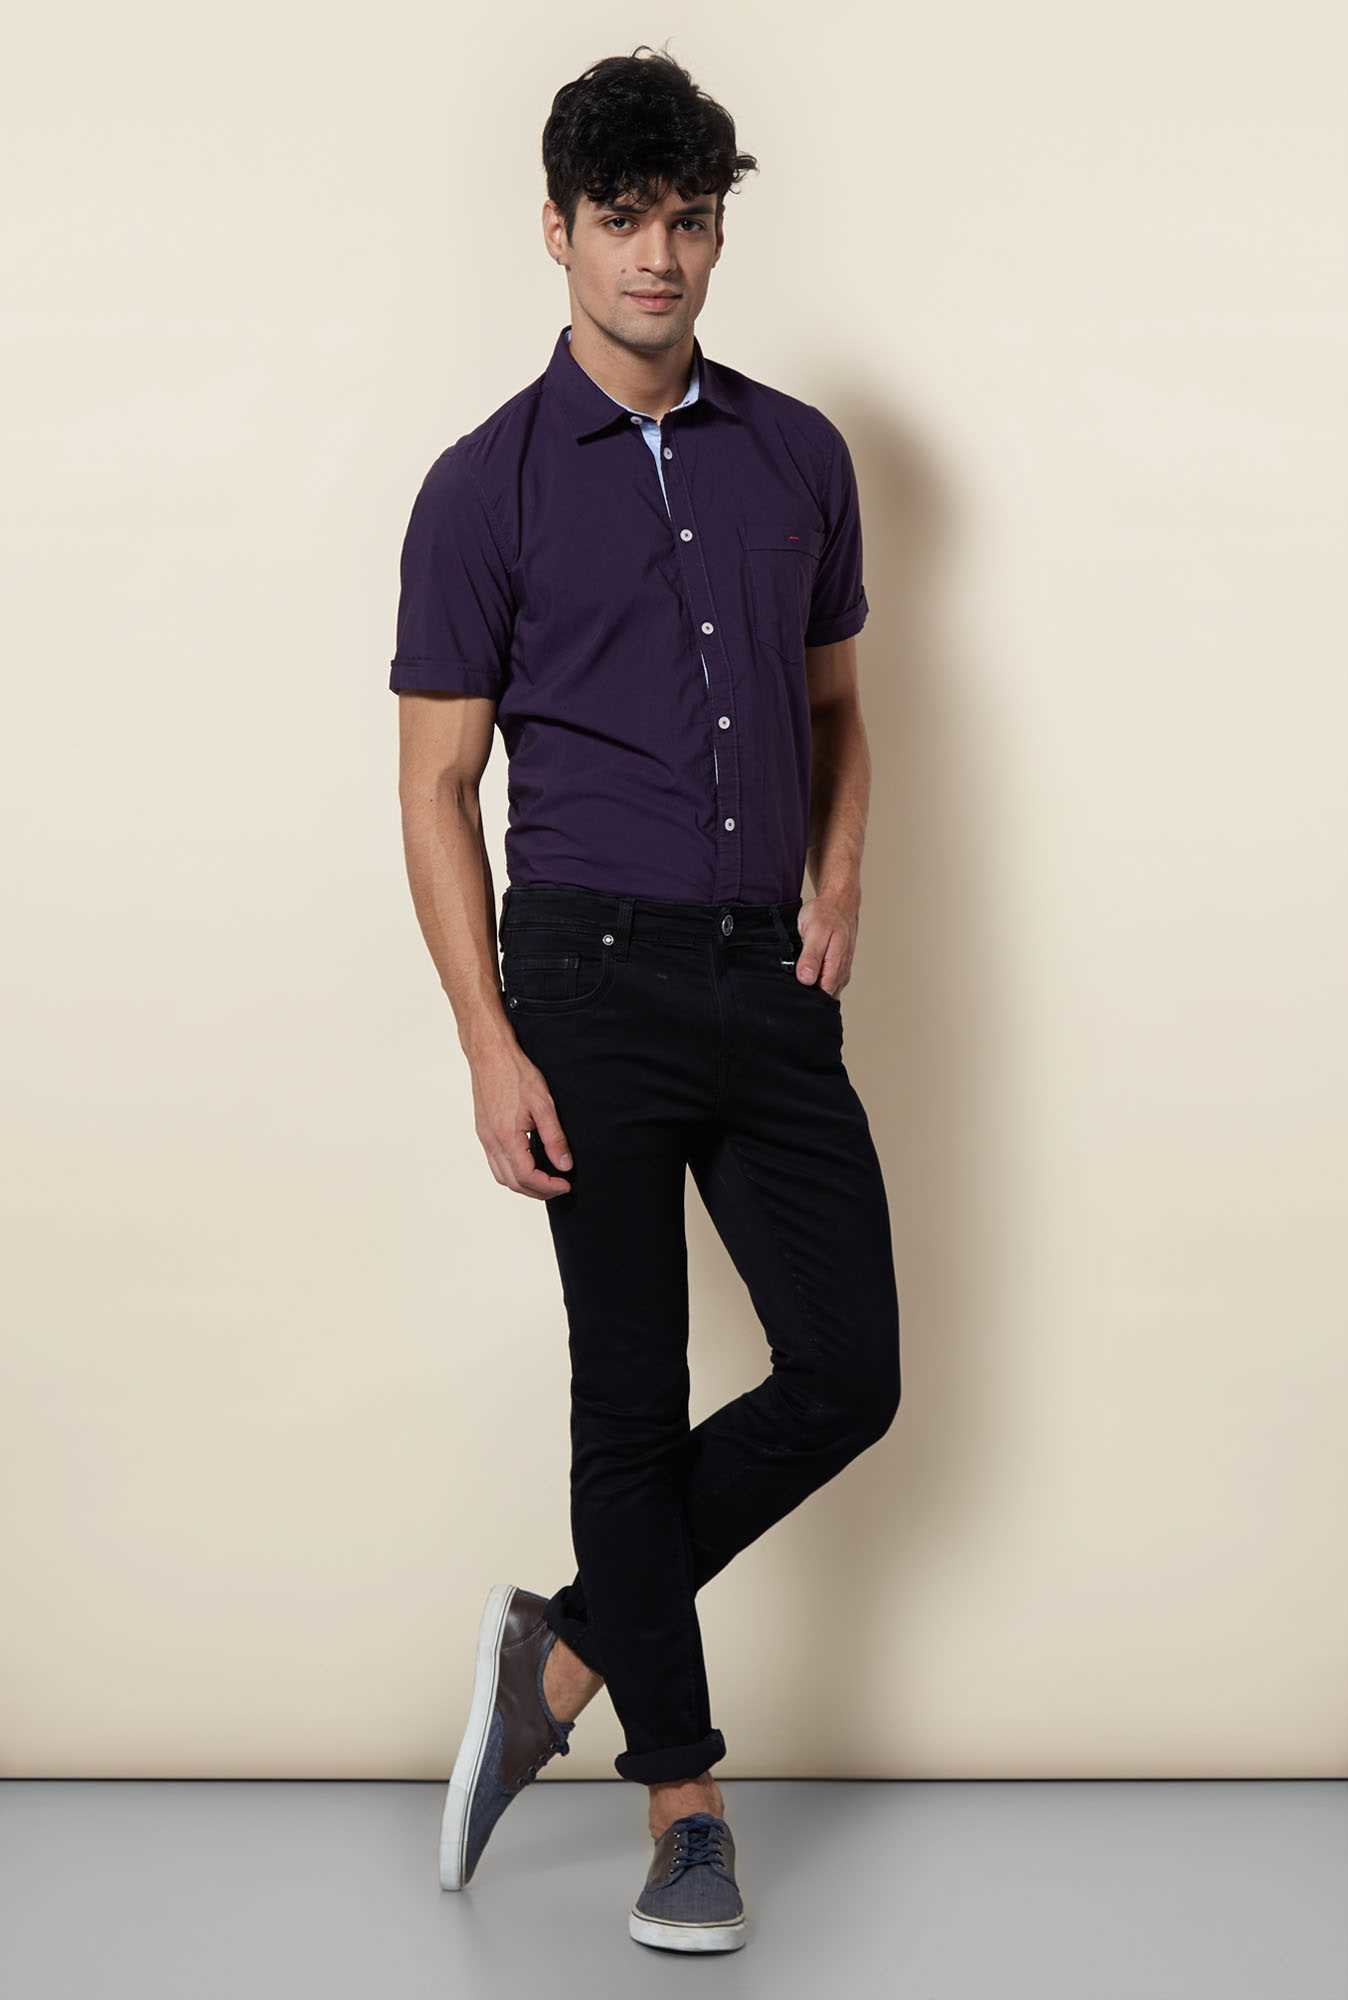 Lawman Purple Short Sleeve Casual Shirt